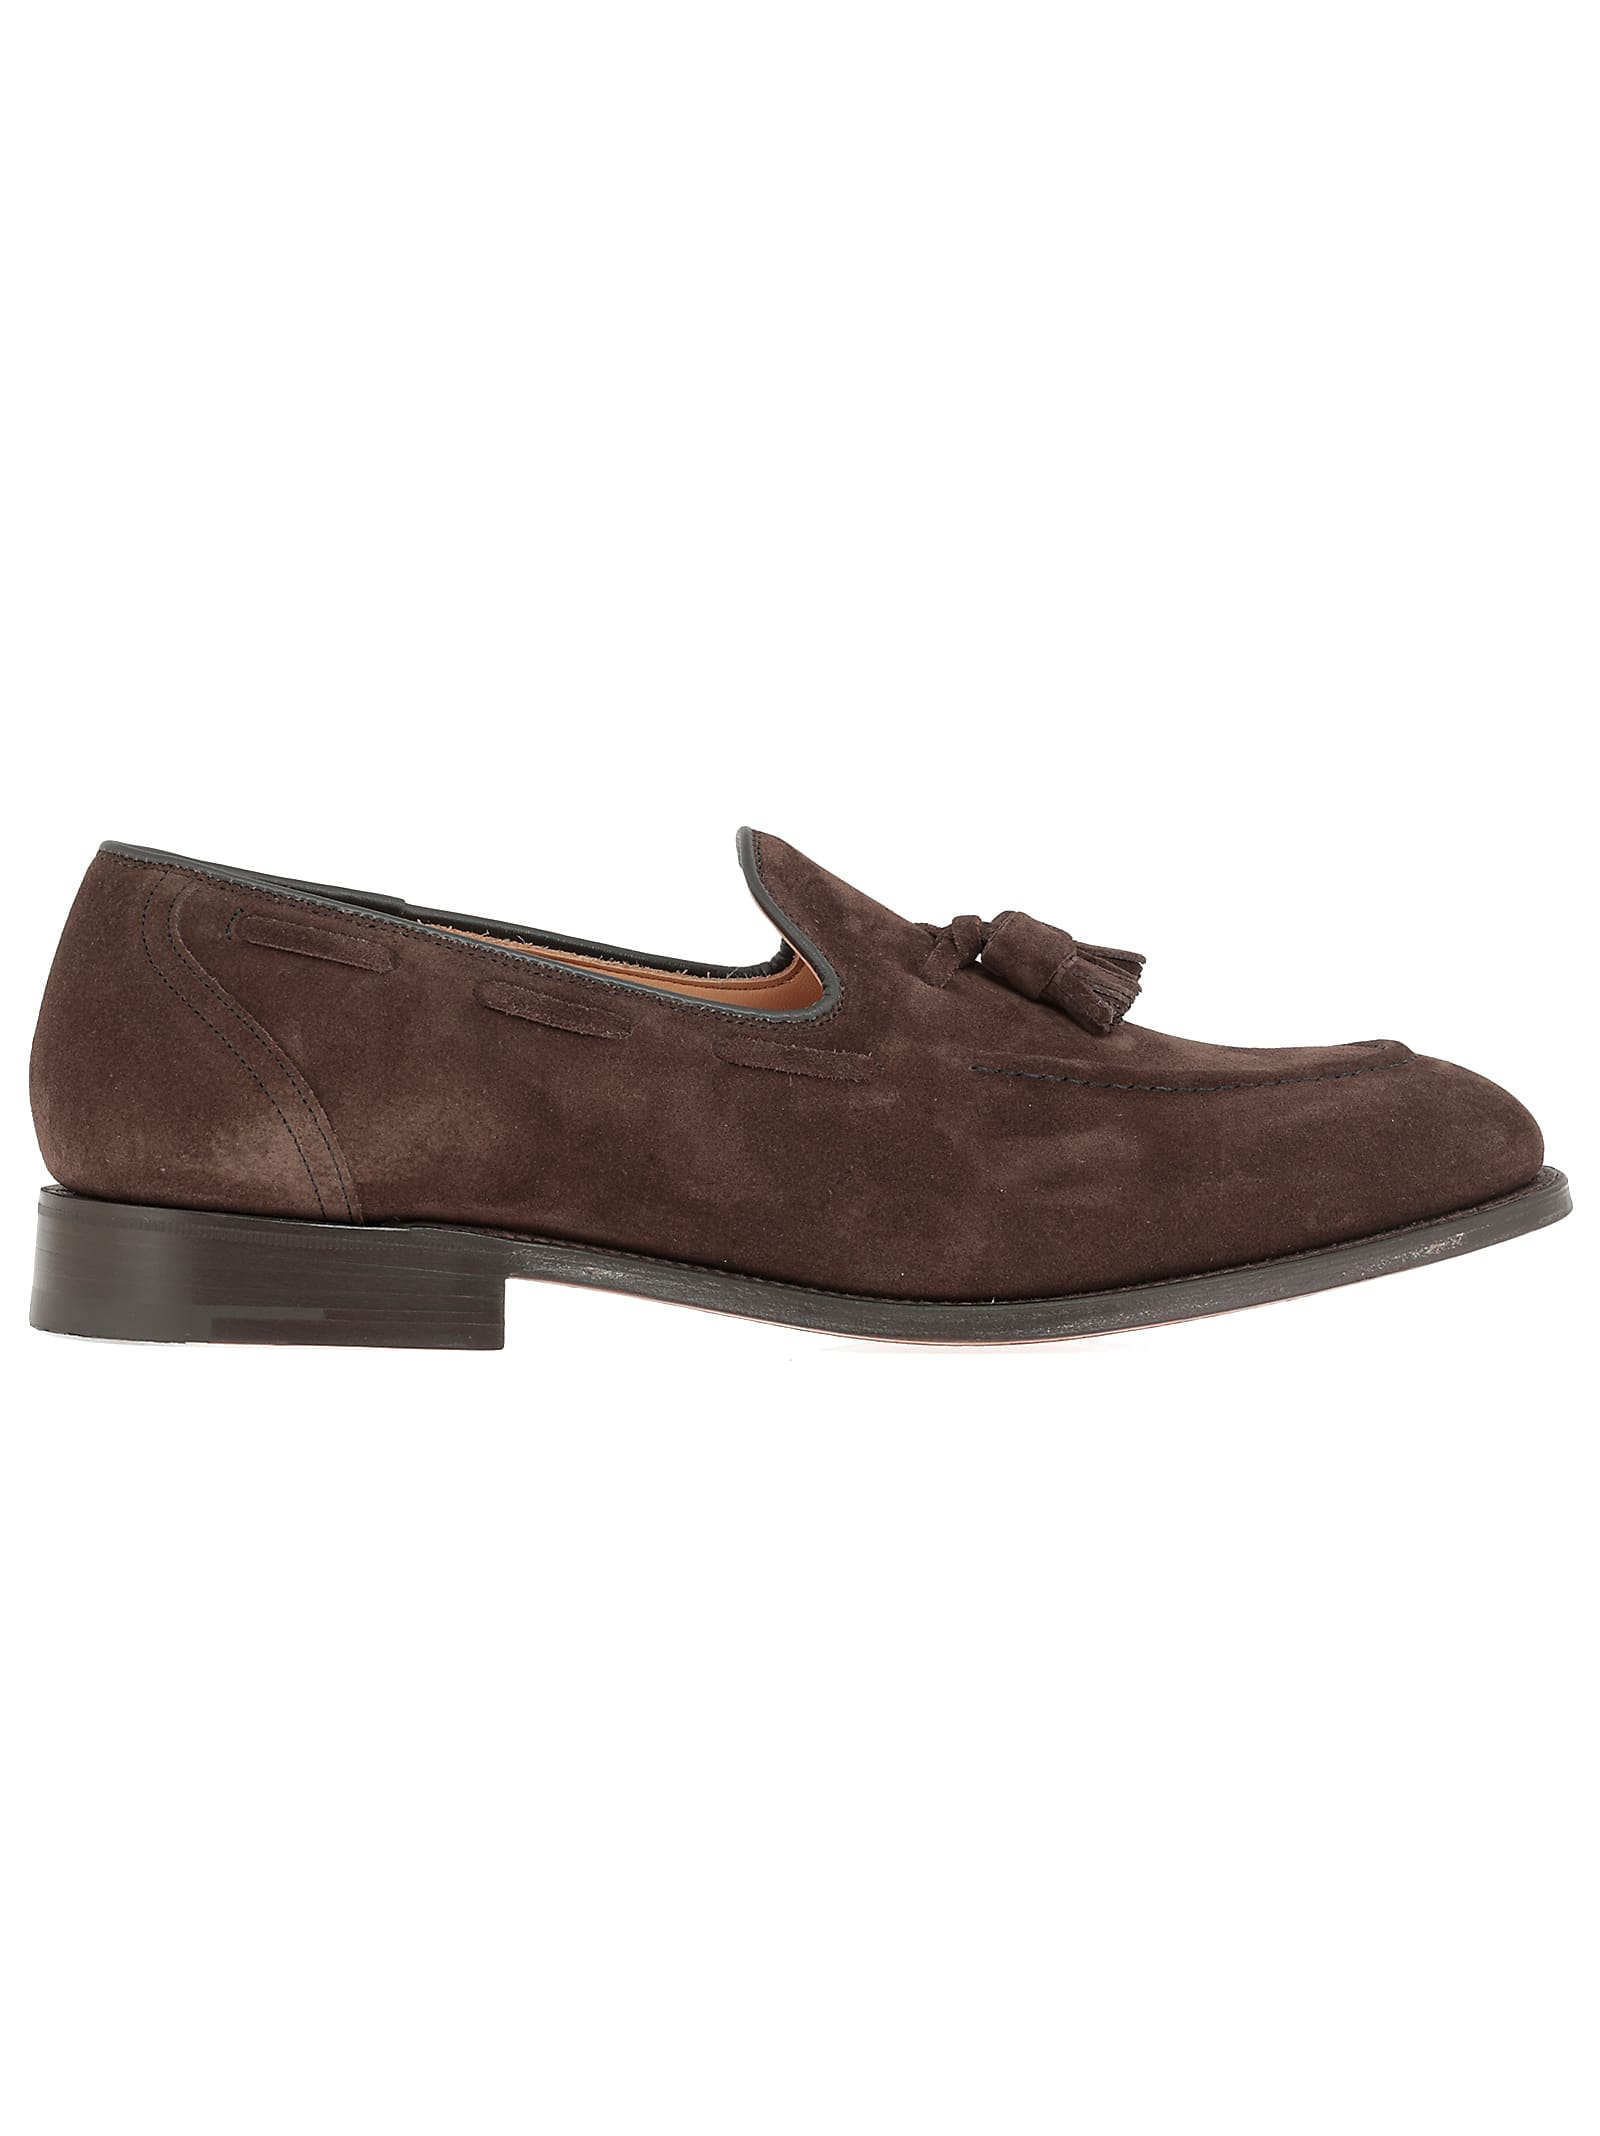 Churchs Kingsley 2 Loafer